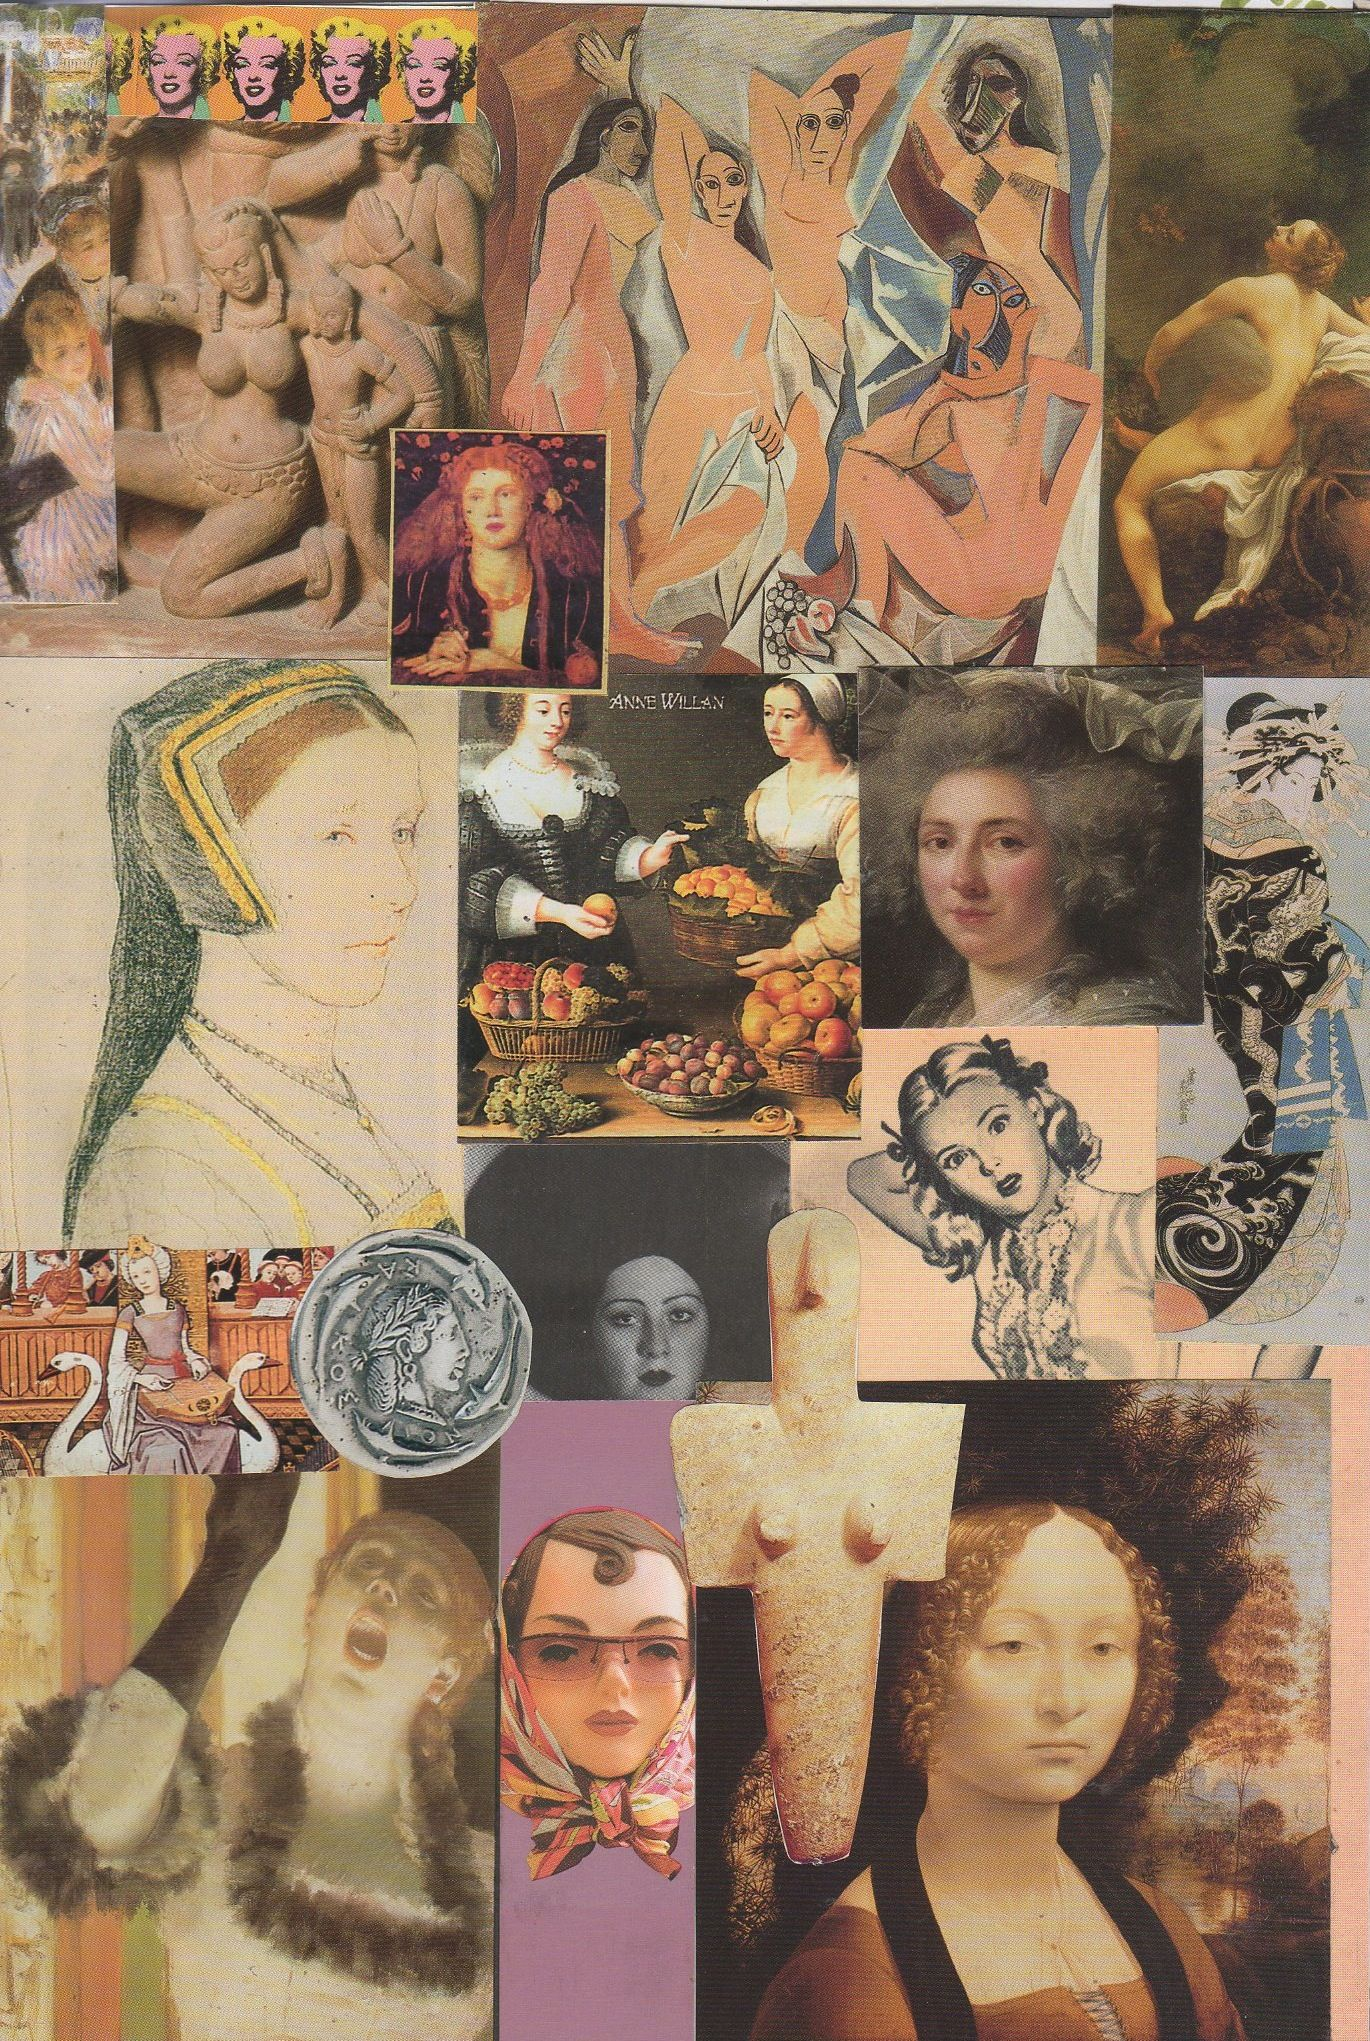 International Women's Day! A collage of women in art, part 2 of 2